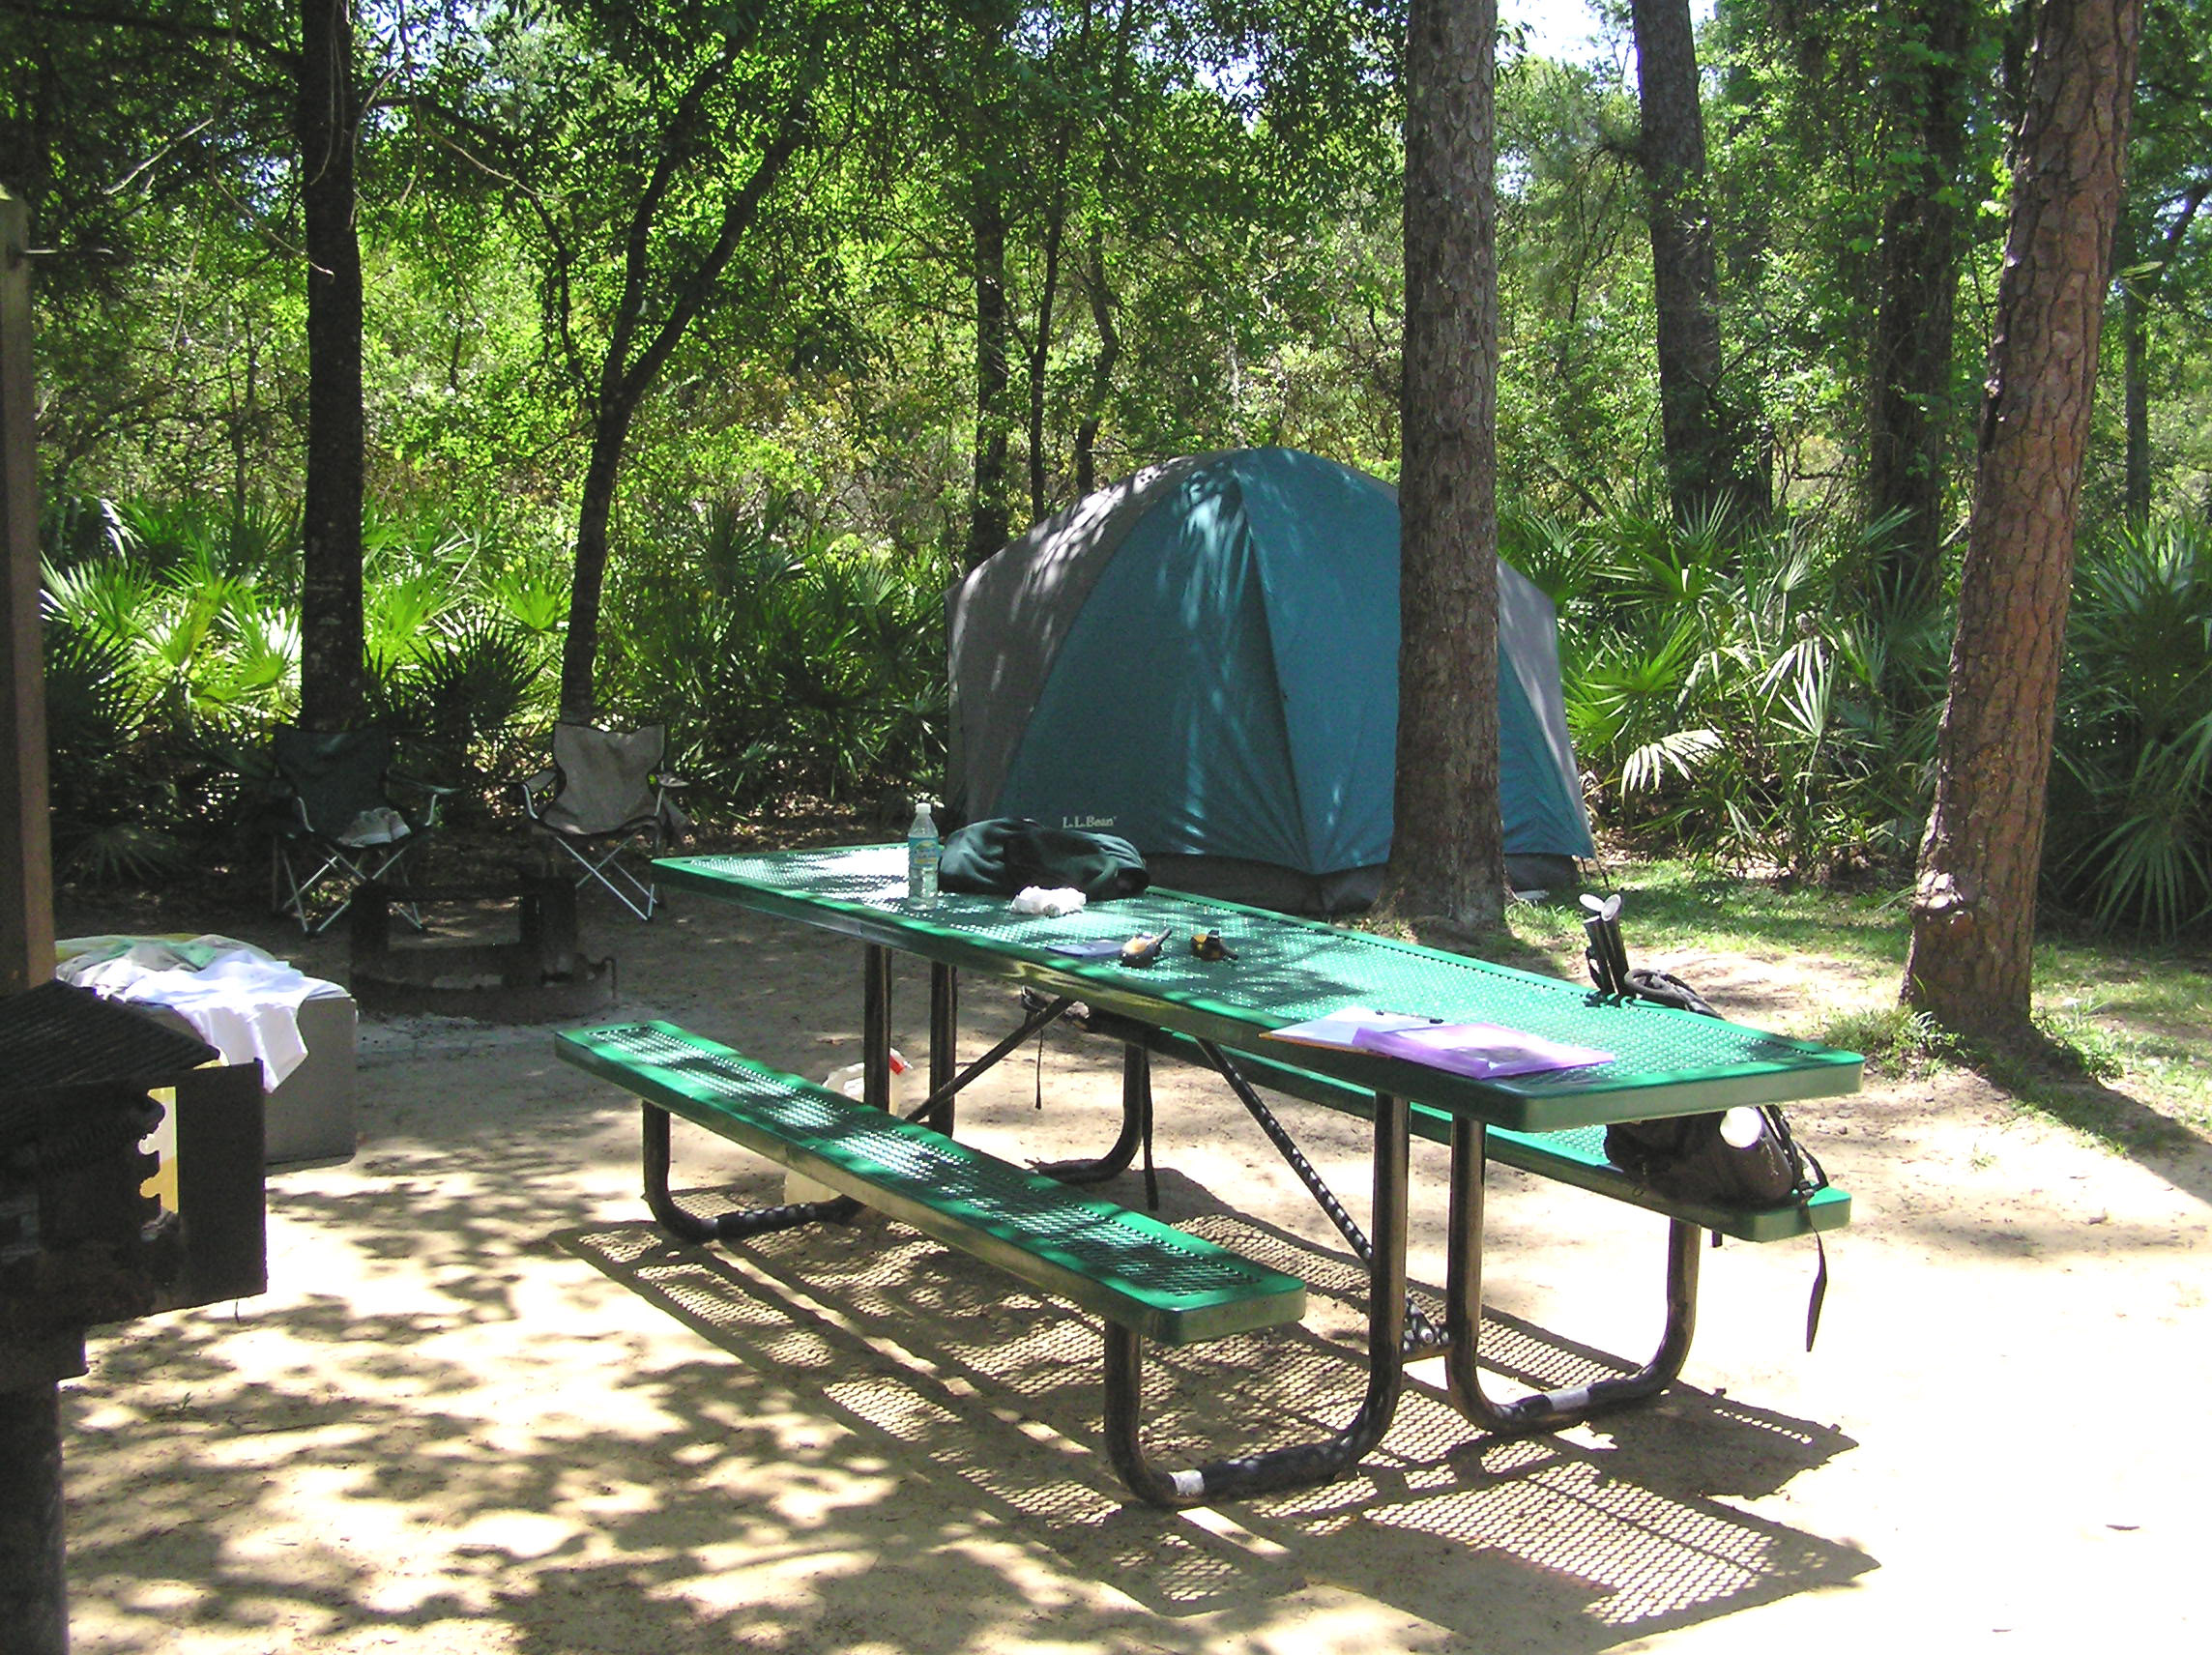 cabin camping in the woods. camping at juniper springs cabin in the woods